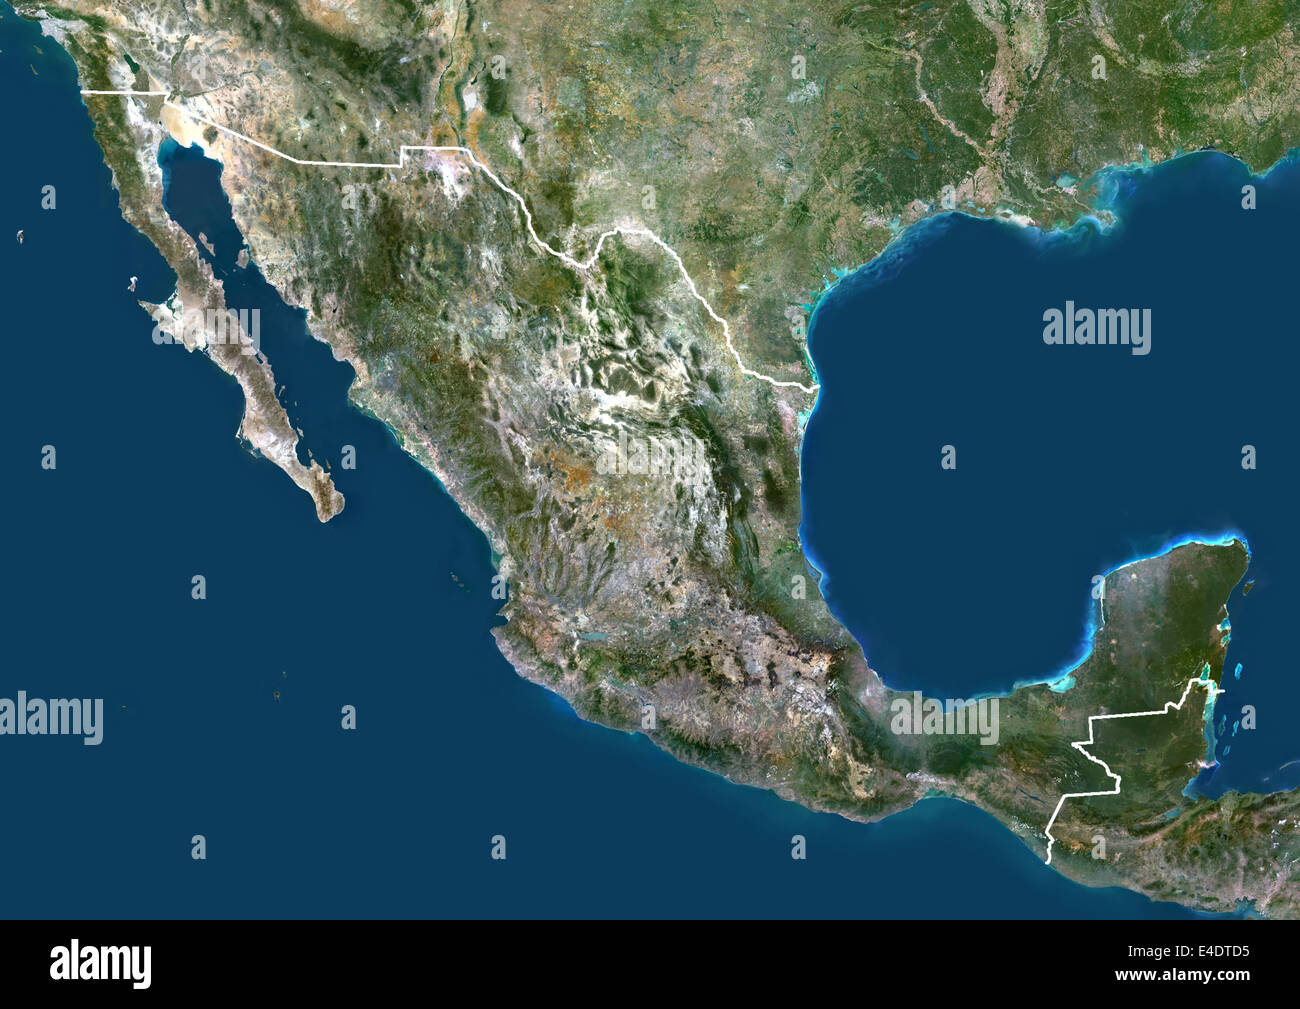 Mexico, North America, True Colour Satellite Image With ... on map brazil satellite, australia satellite, live local satellite, haiti map satellite, views your house from satellite, map travel mexico, map of africa and south america, map of ancient mediterranean world, world satellite, cat island bahamas map satellite, map of aruba and venezuela, google earth views from satellite, google map satellite, map showing cancun, philippine map satellite, look at address from satellite, chihuahua mexico map satellite, map of castries st. lucia, weather channel atlantic satellite, earth observation satellite,